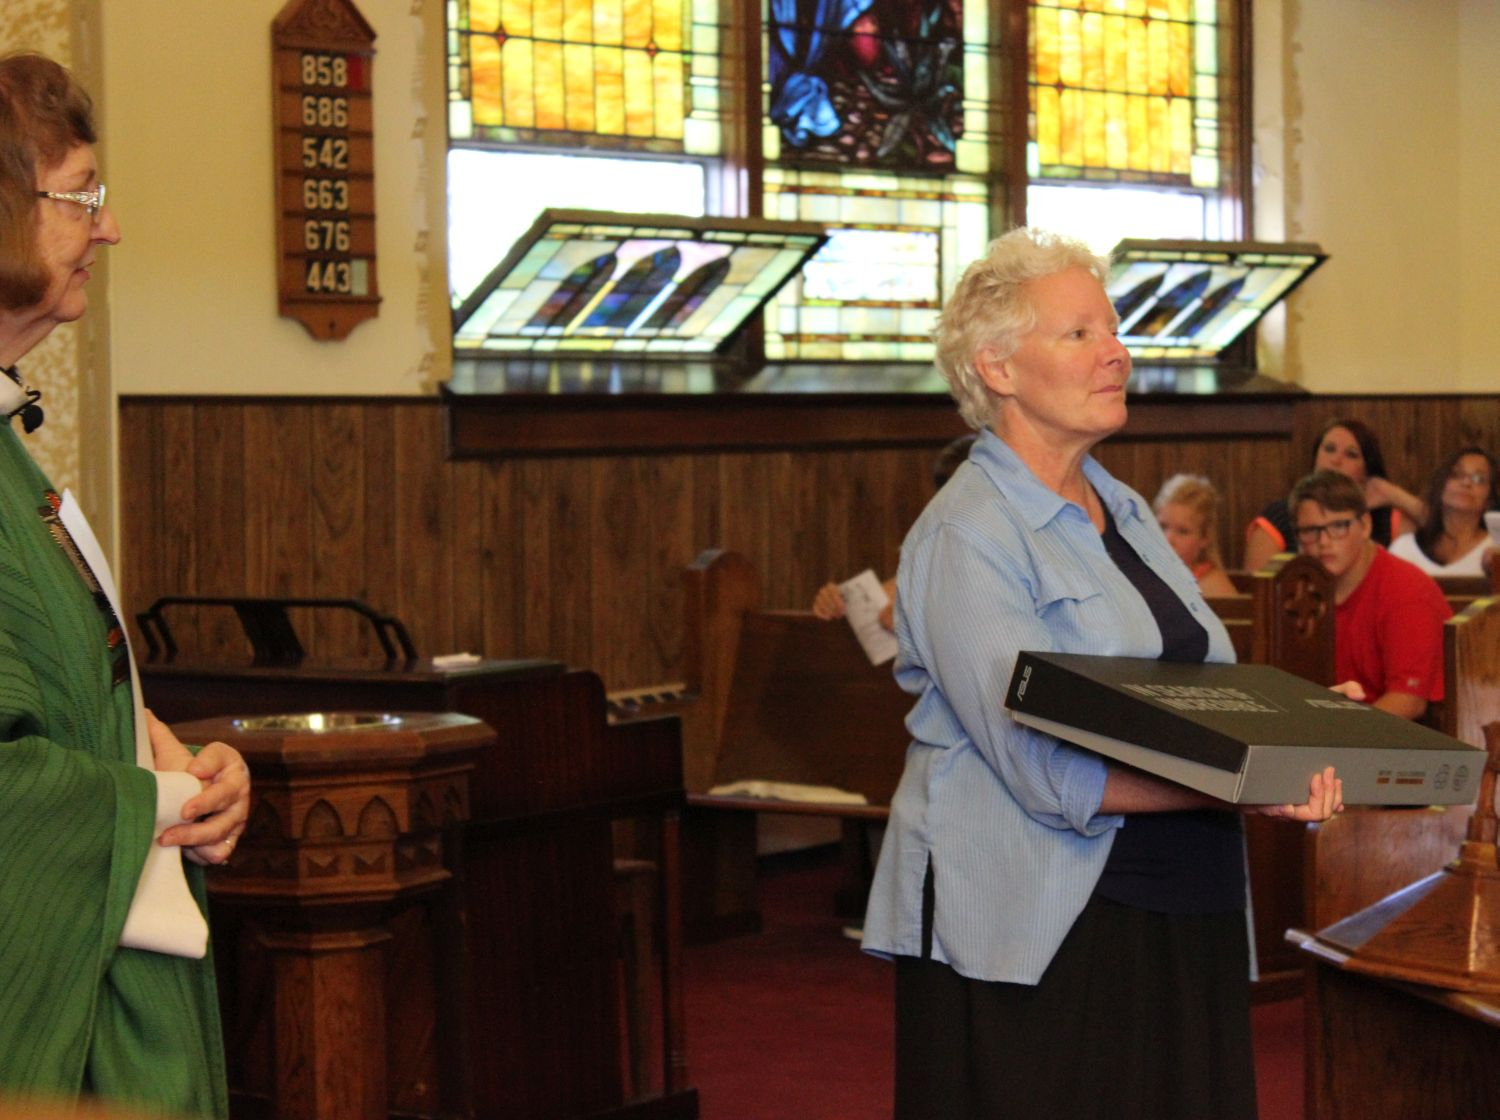 Kathleen Lutz receives laptop for Kenya mission work, 18 Sep 2016.